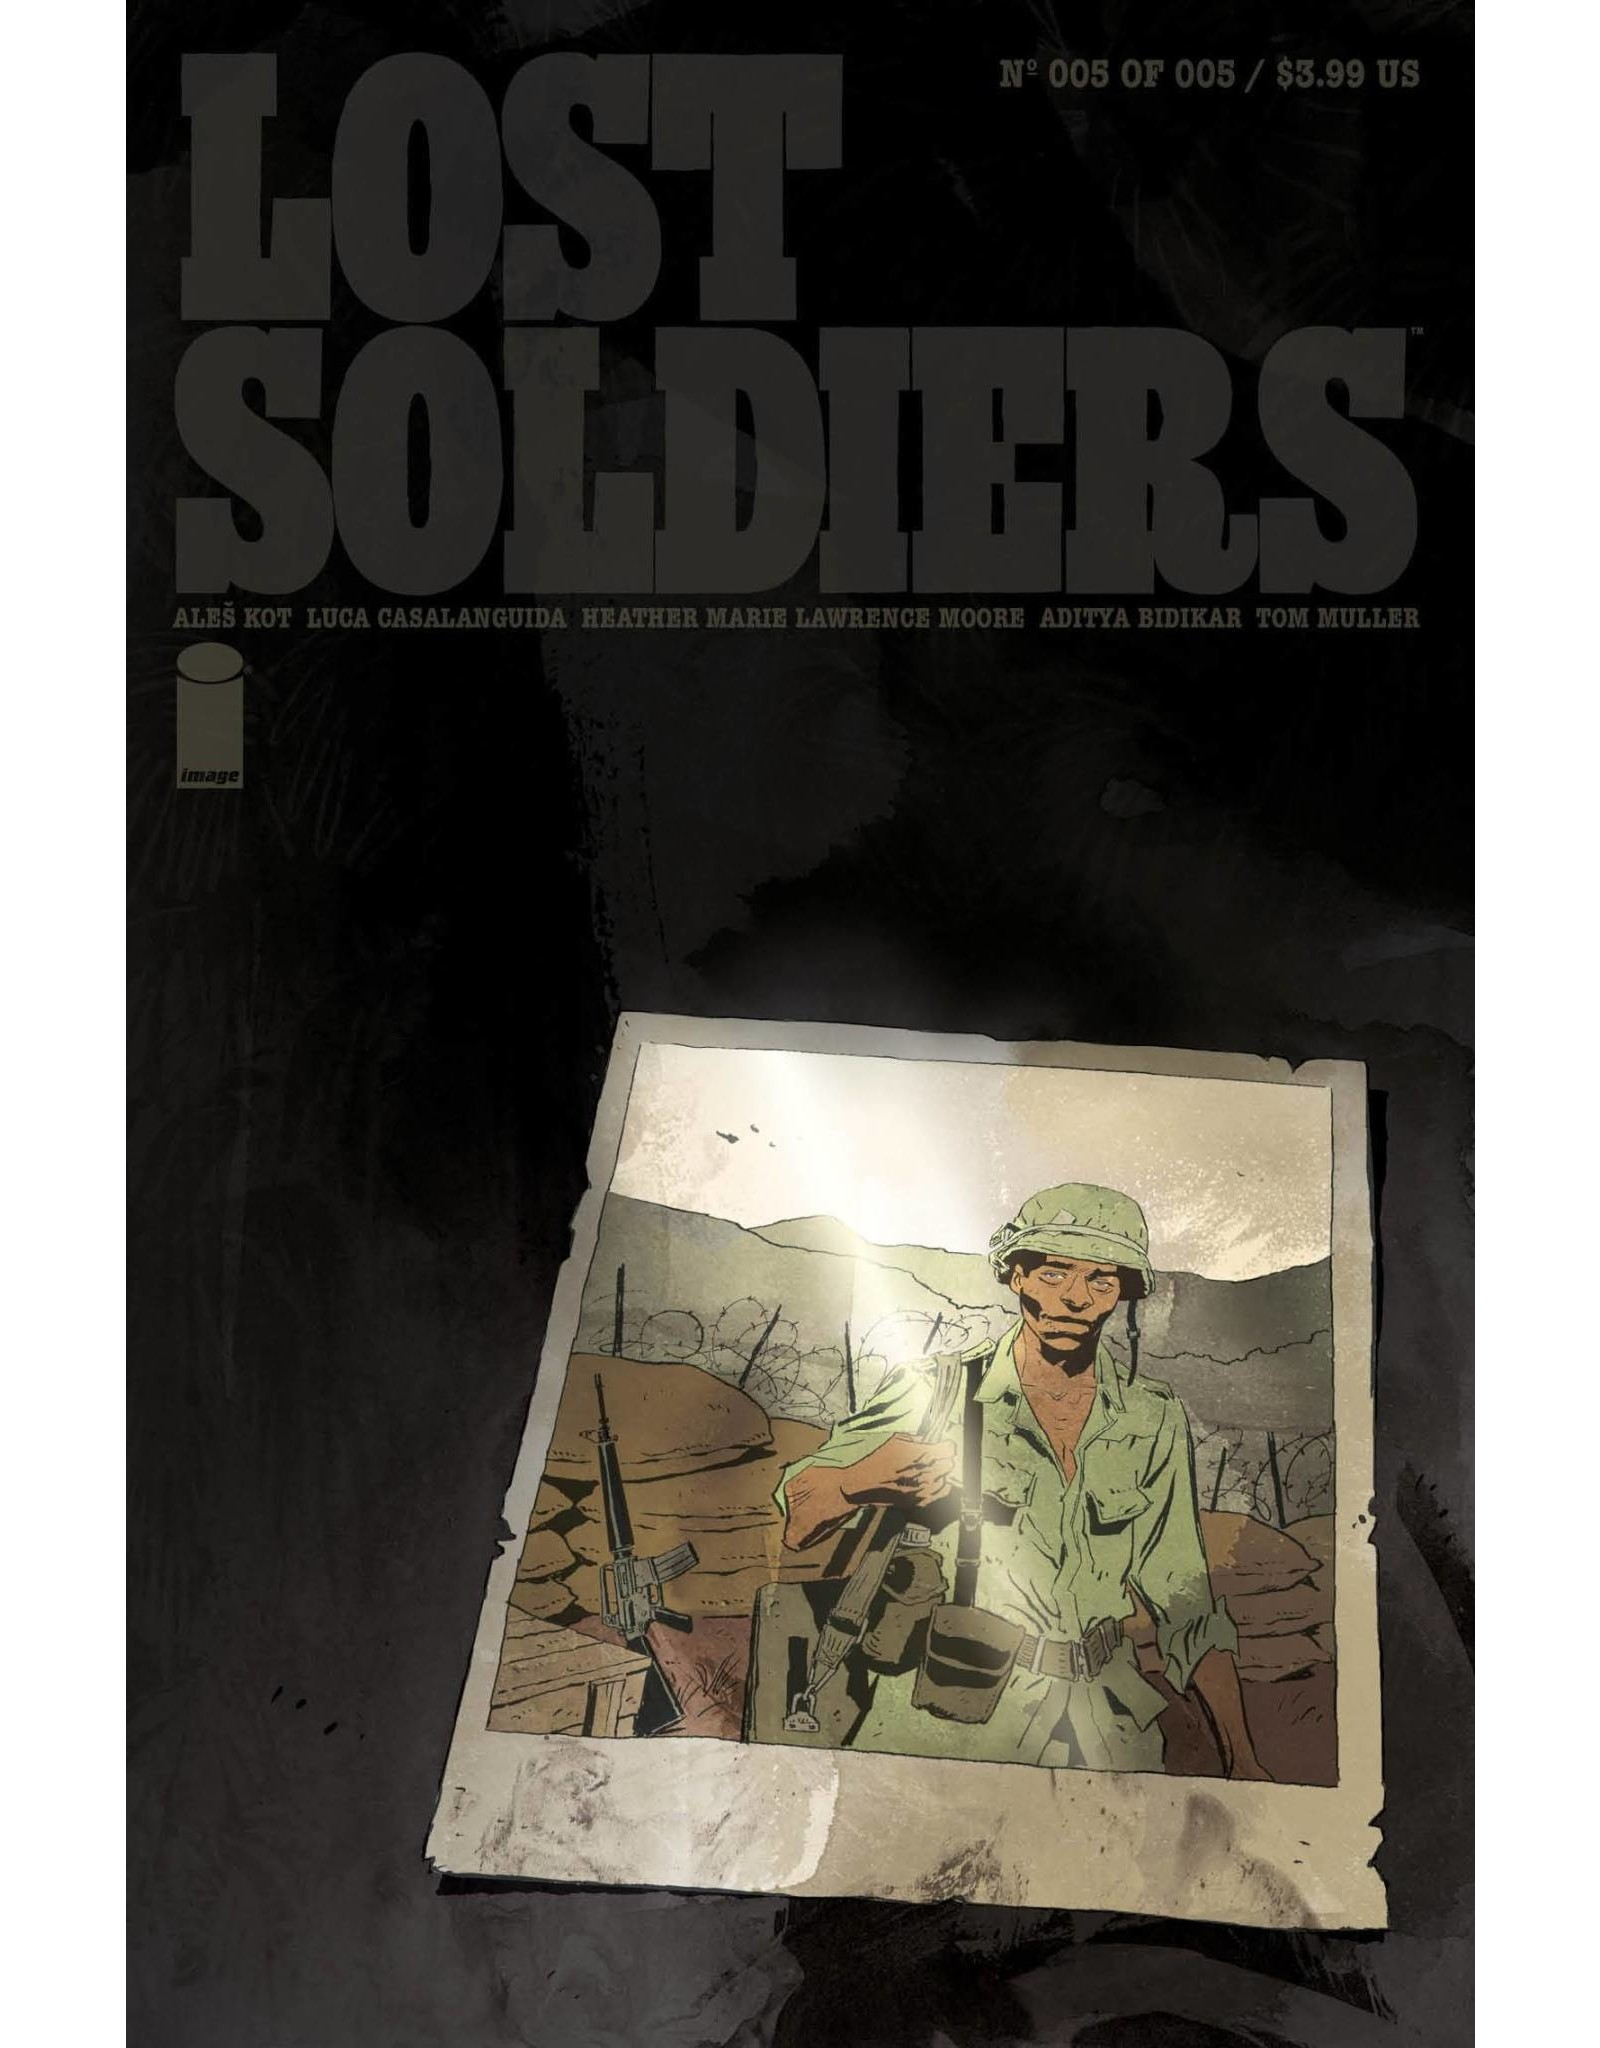 Image Comics LOST SOLDIERS #5 (OF 5)